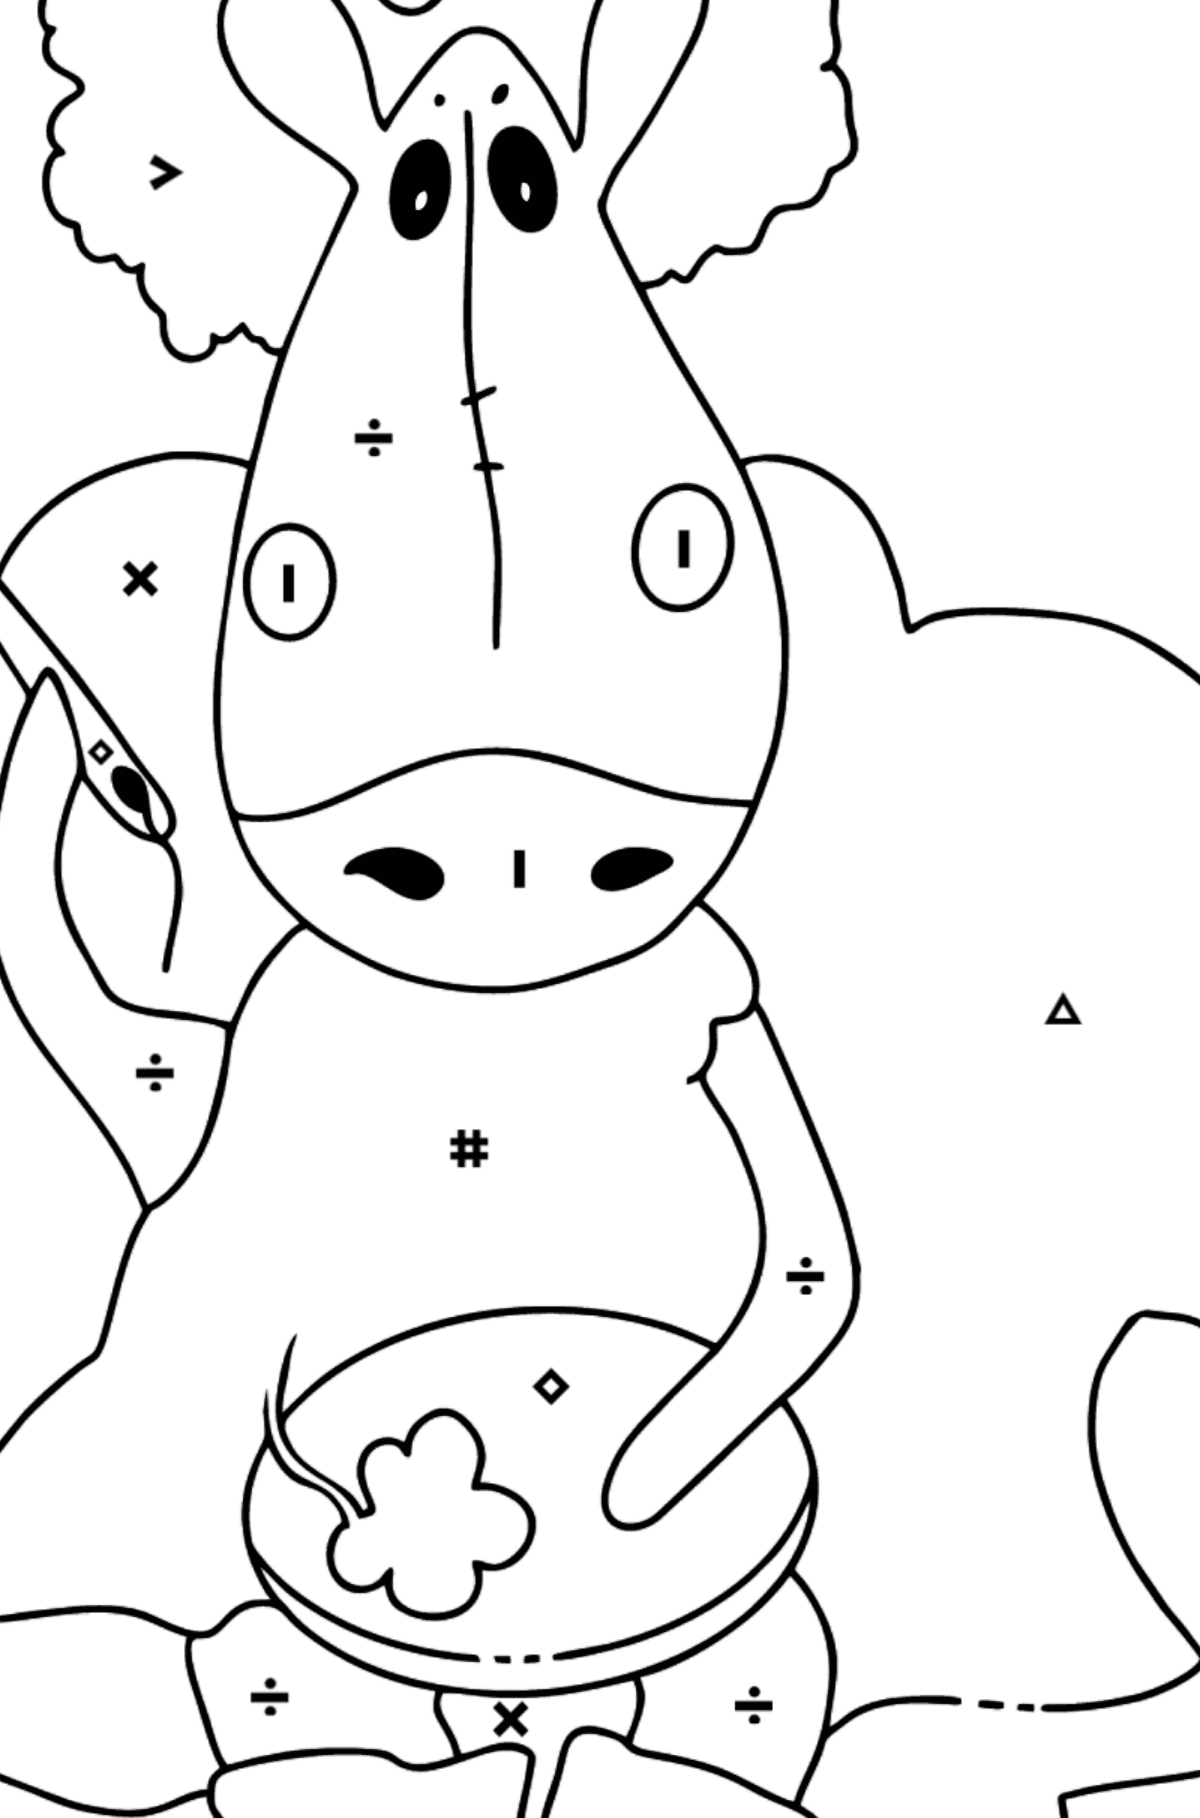 Simple coloring page a horse on the sofa - Coloring by Symbols for Kids